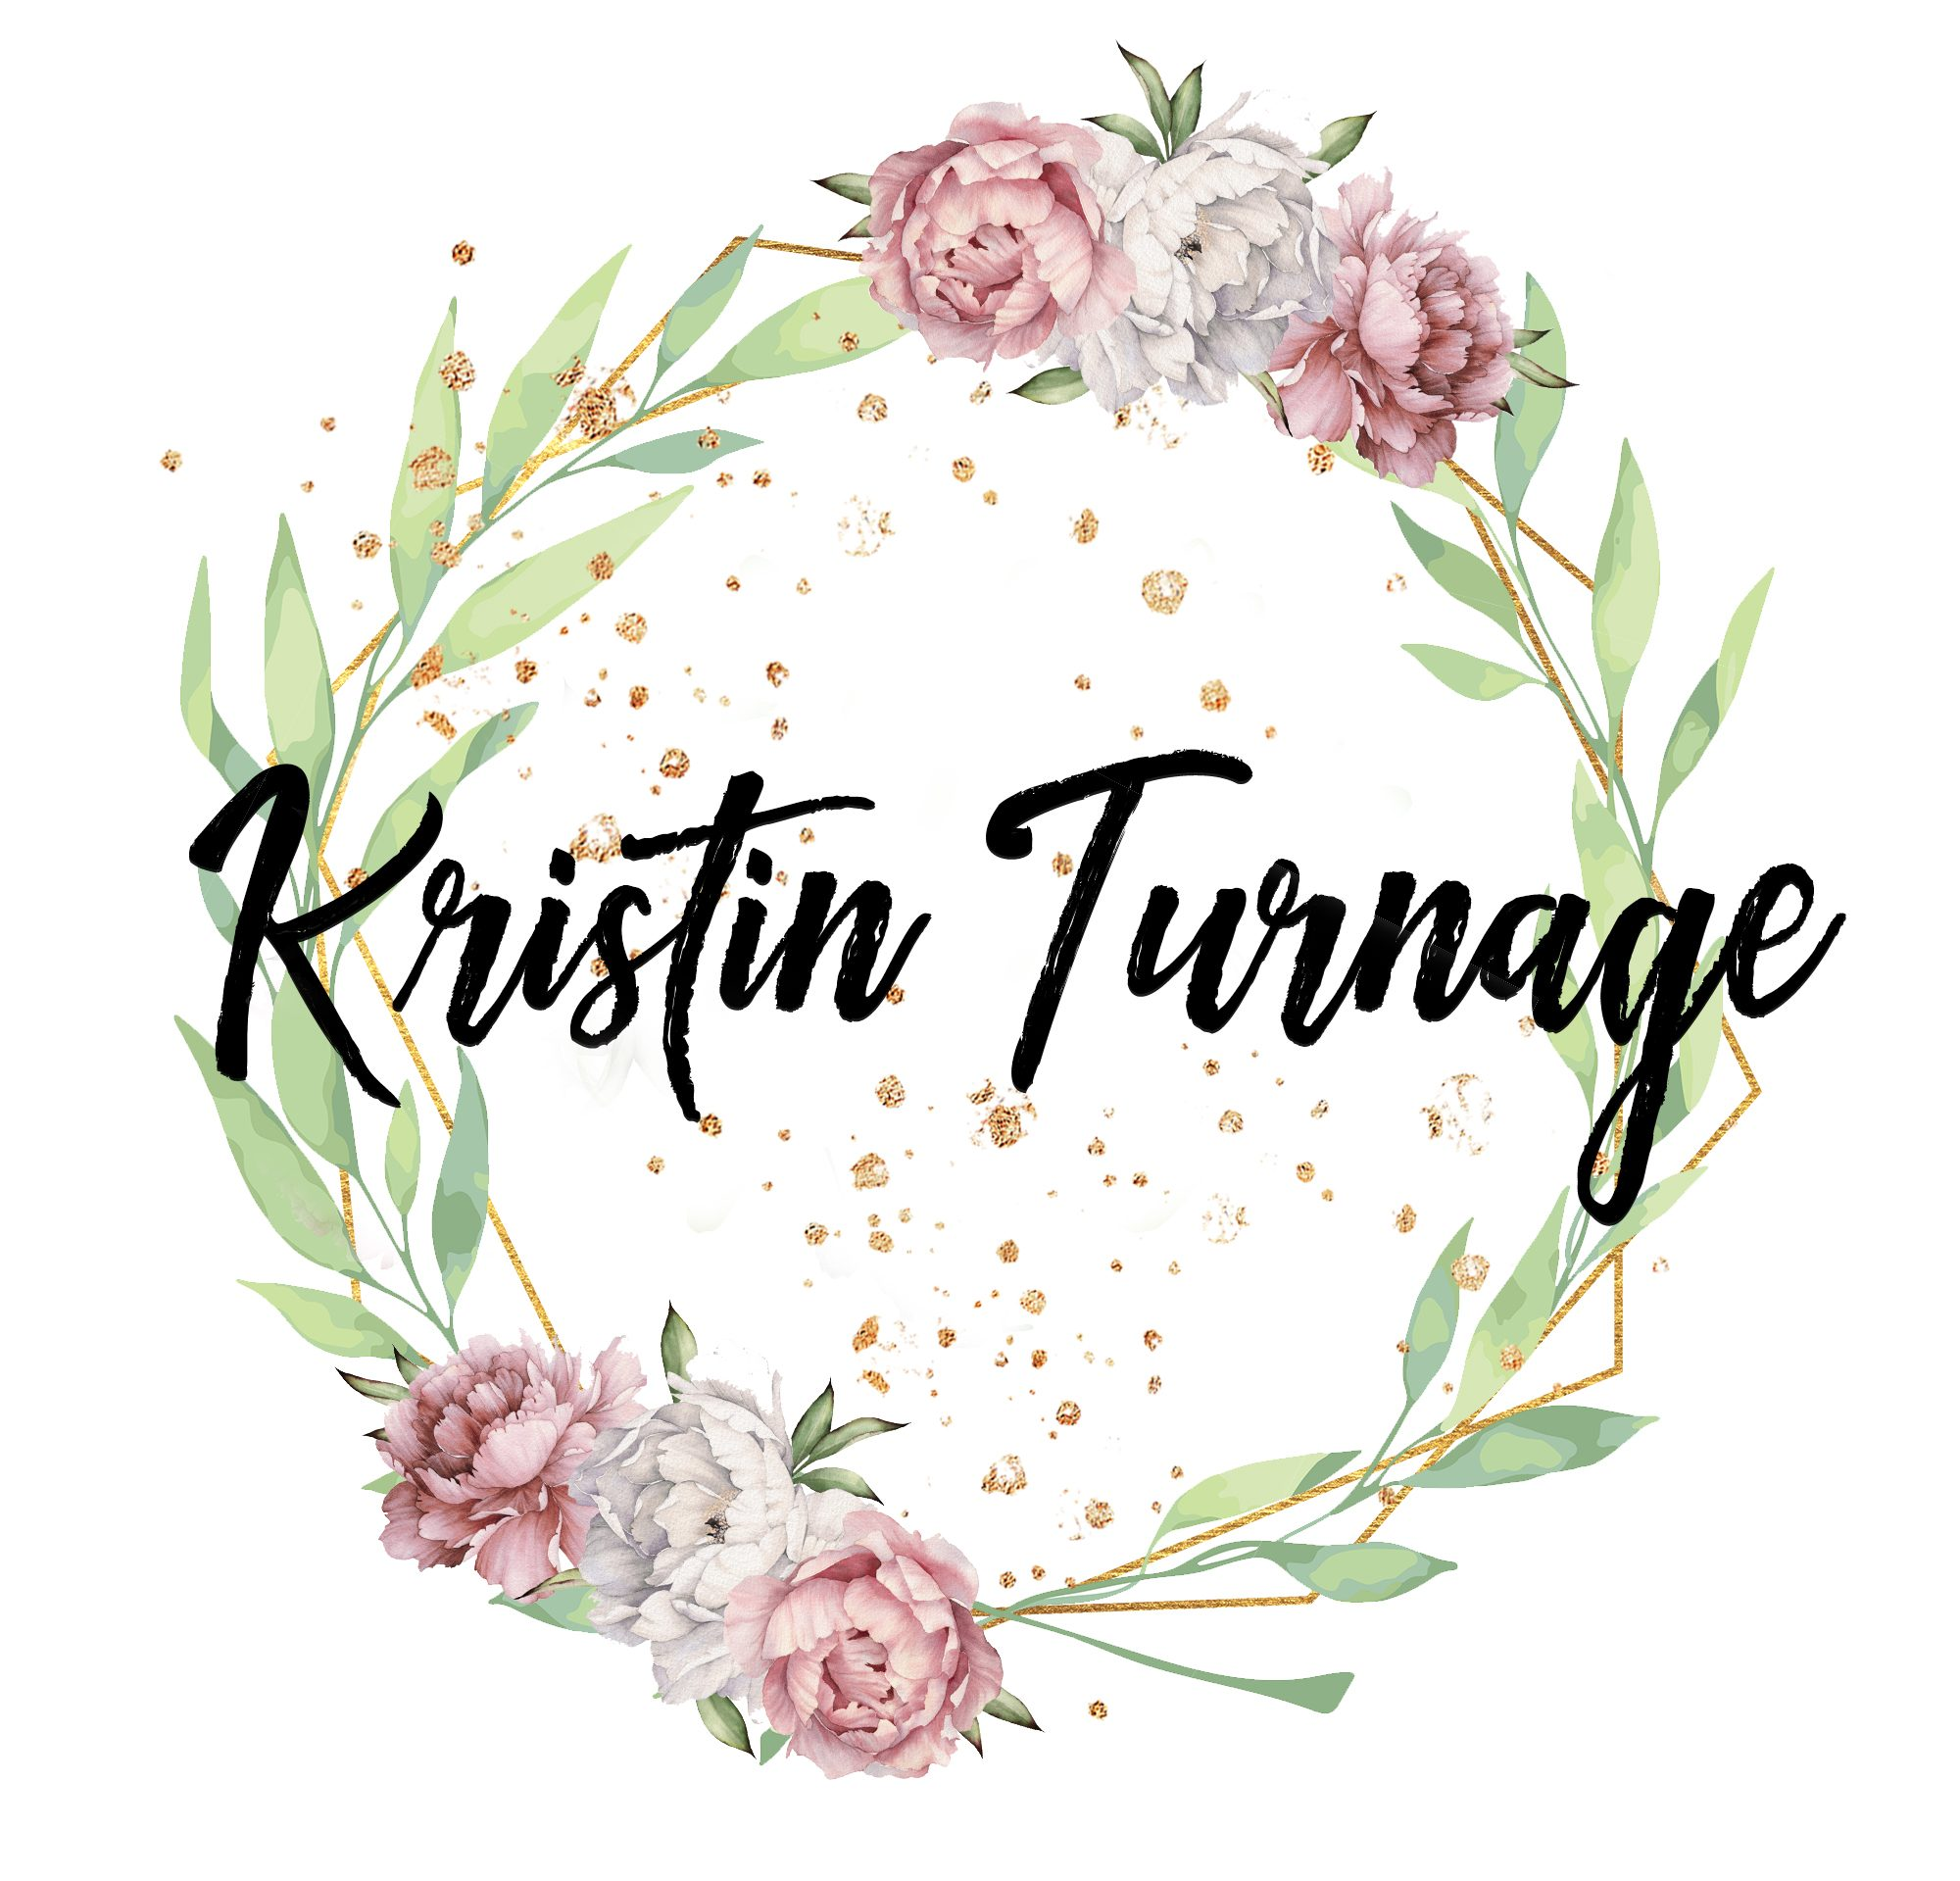 Author Kristin Turnage